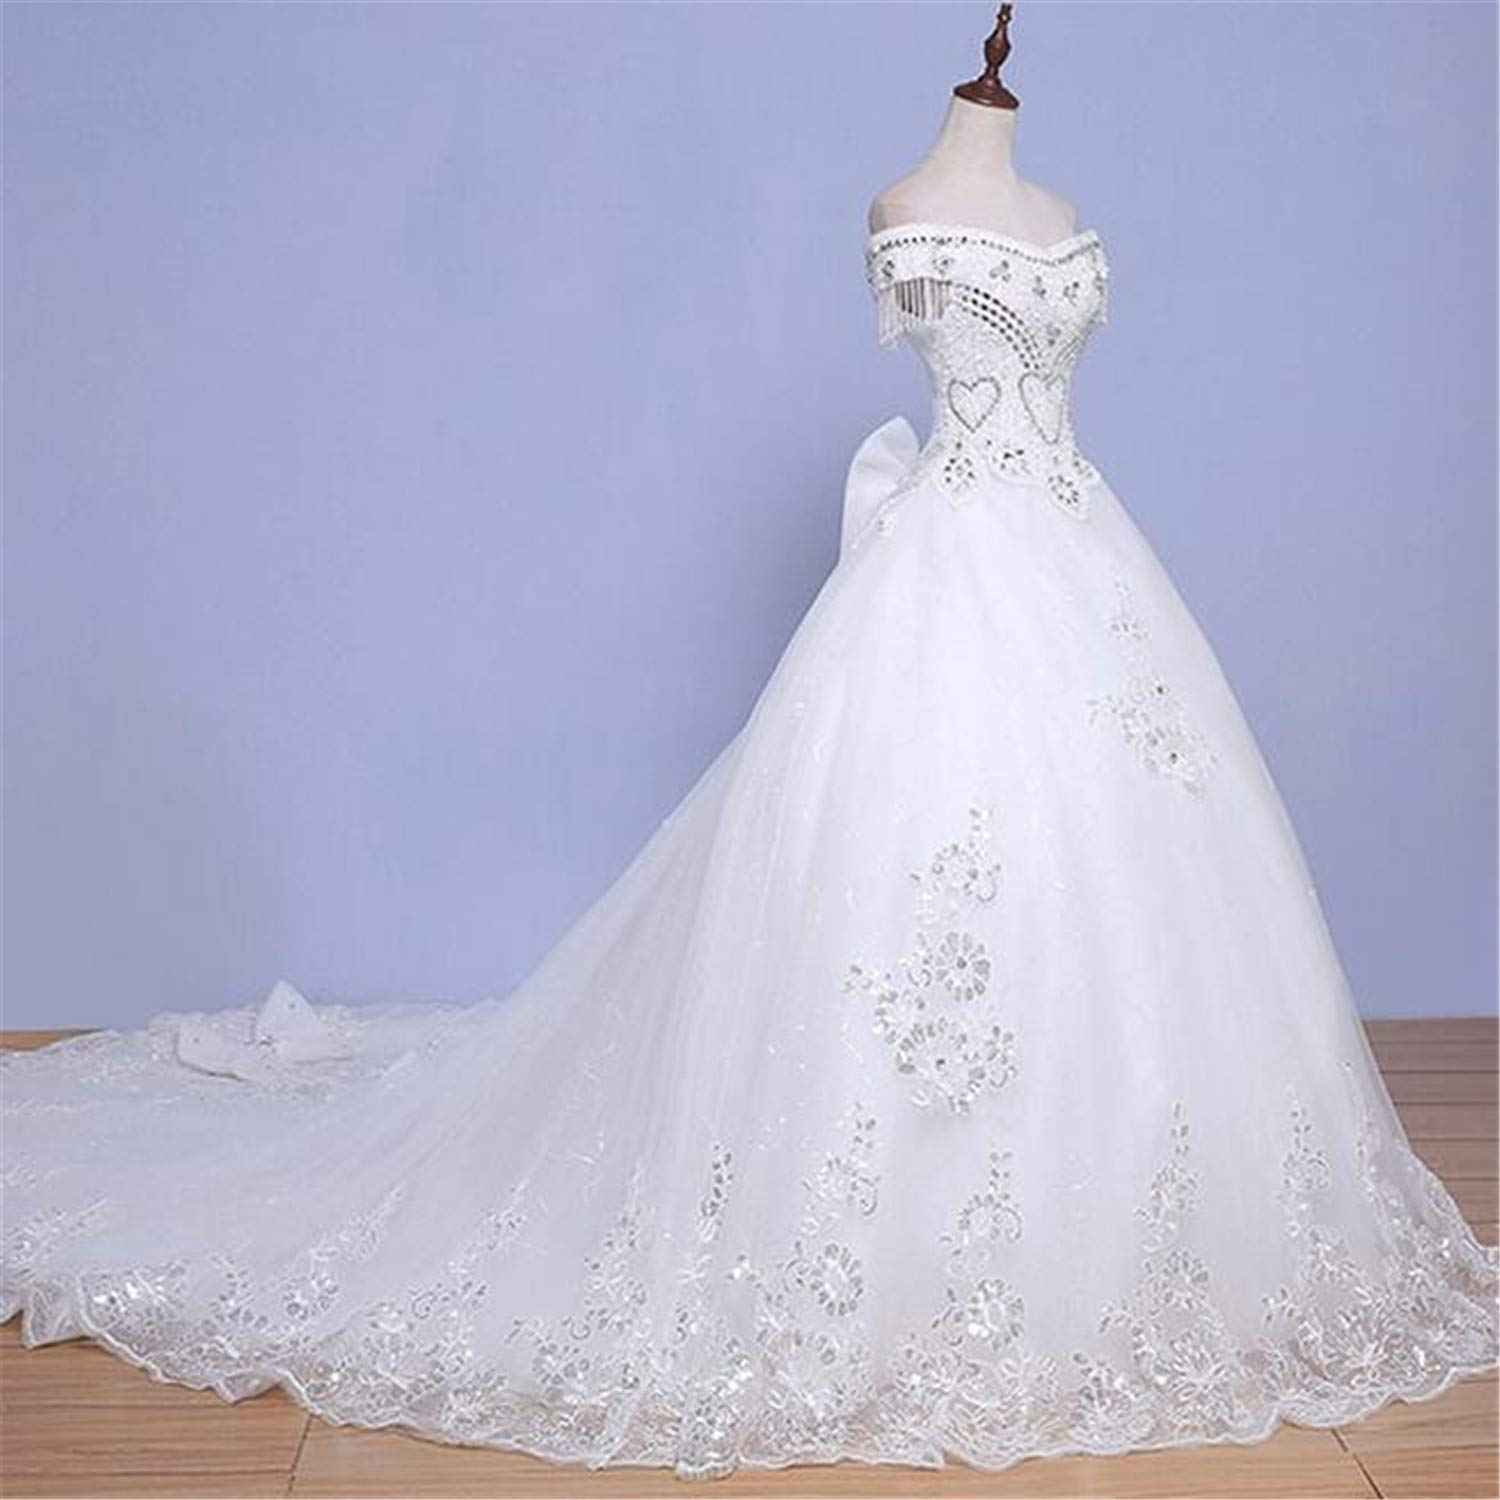 Wedding Dress, for Bride Lace Applique Embroidery Princess Elegant Open Back Strap Simple Slim Marry Party Evening